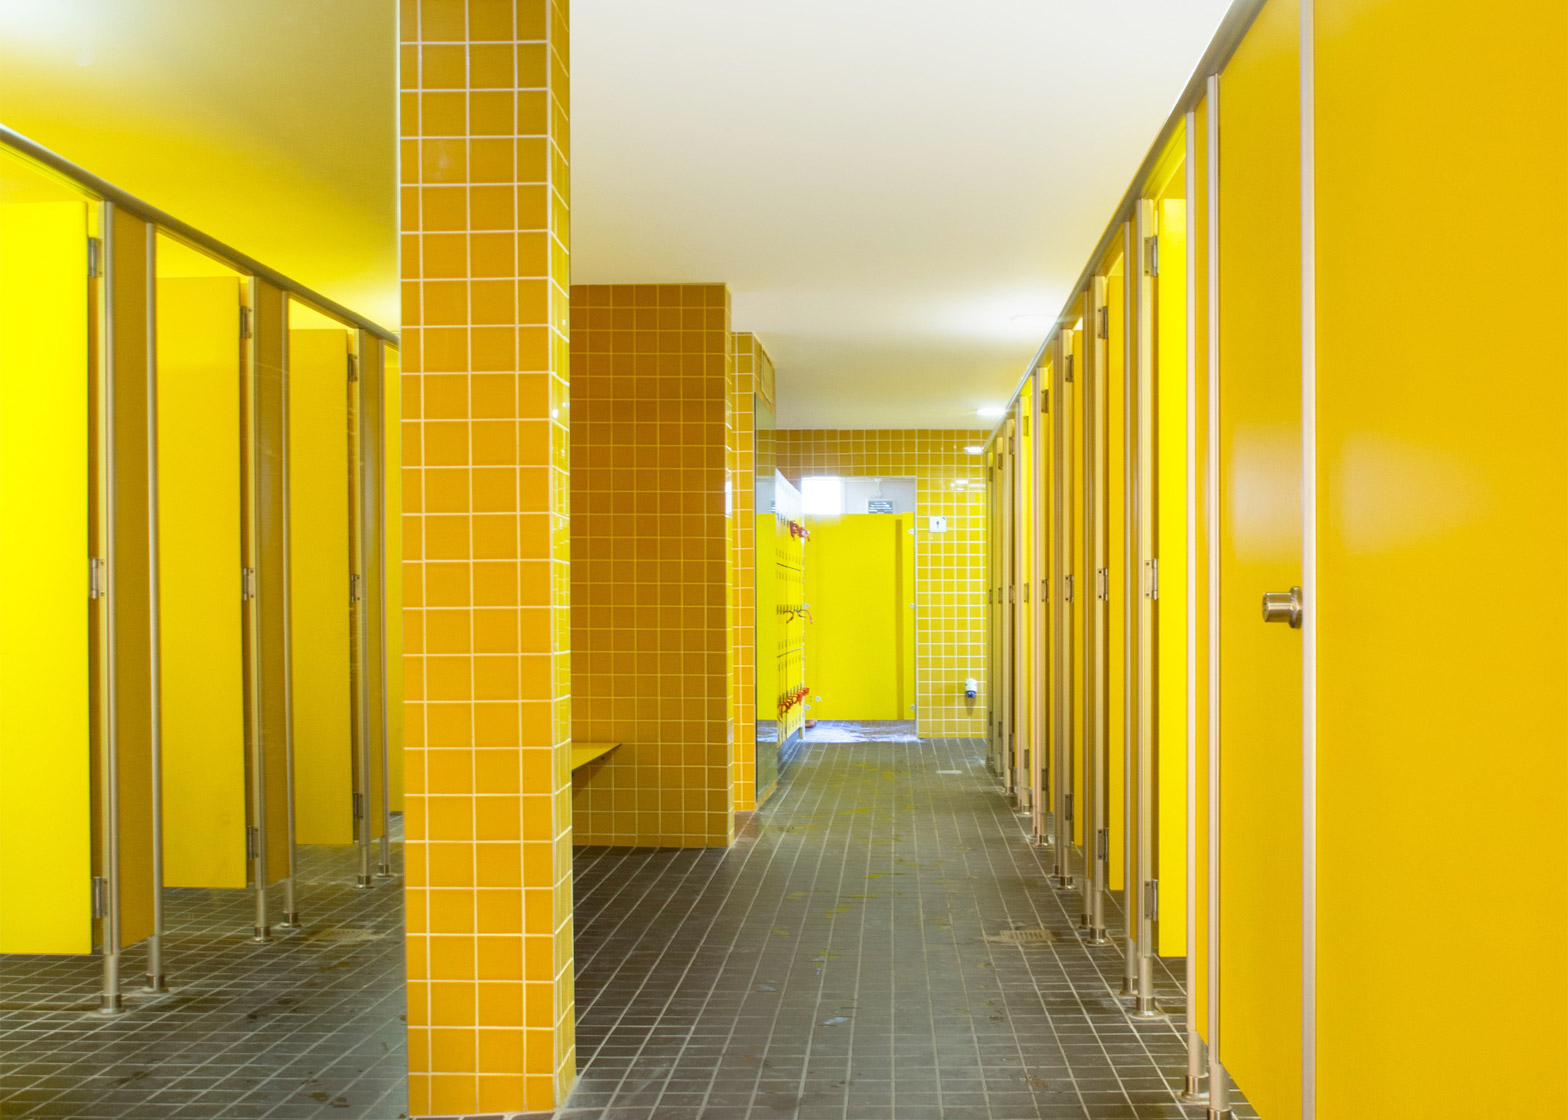 nenagh-leisure-centre-town-park-abk-architects-county-tipperary-ireland-swimming-pool_dezeen_1568_3